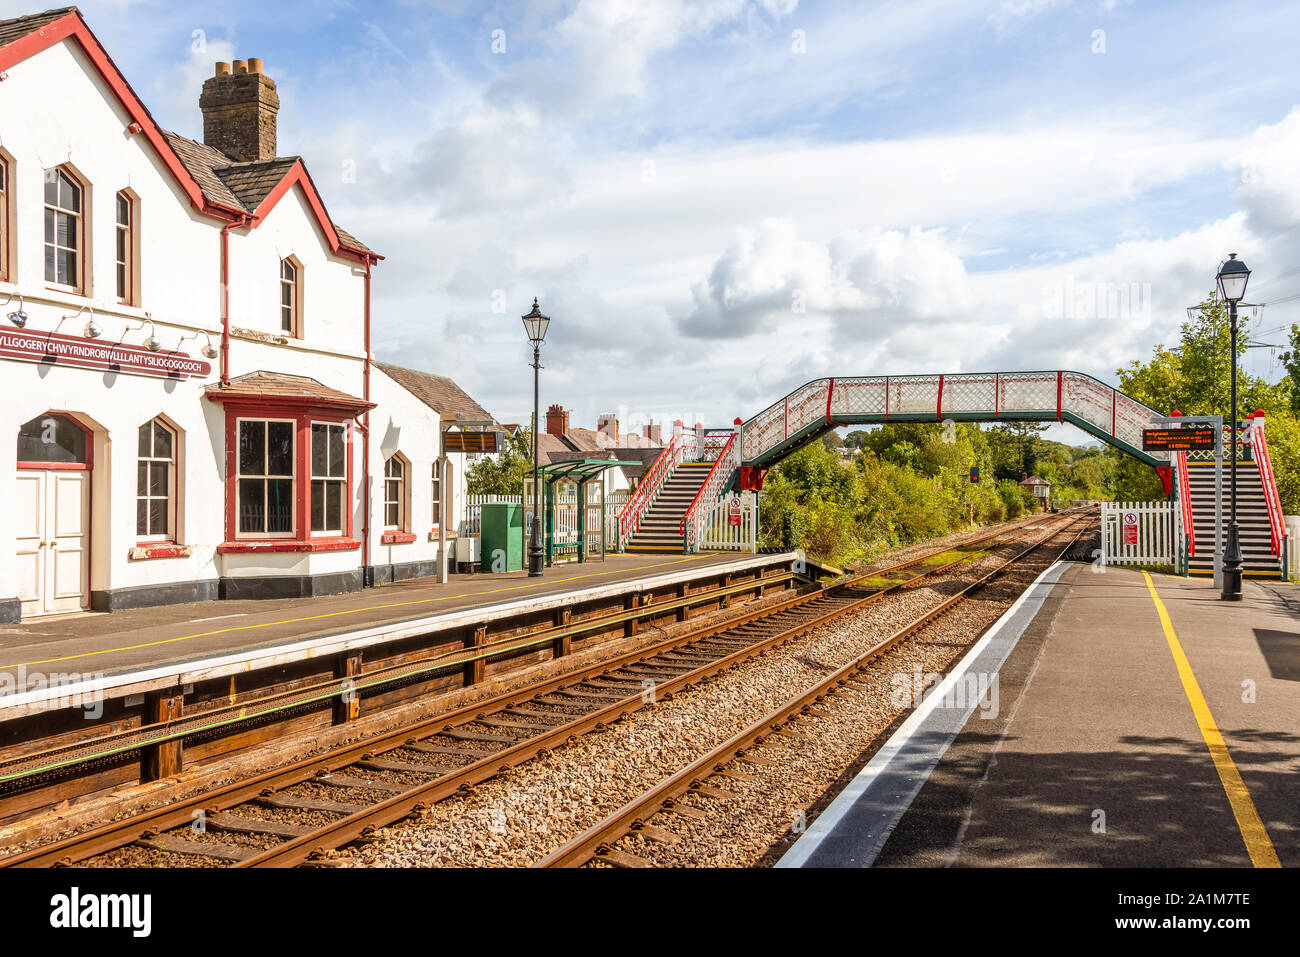 Station building and footbridge at  Llanfairpwllgwyngyll, in Wales known to have the longest place name in the UK. A blue sky is overhead. Stock Photo